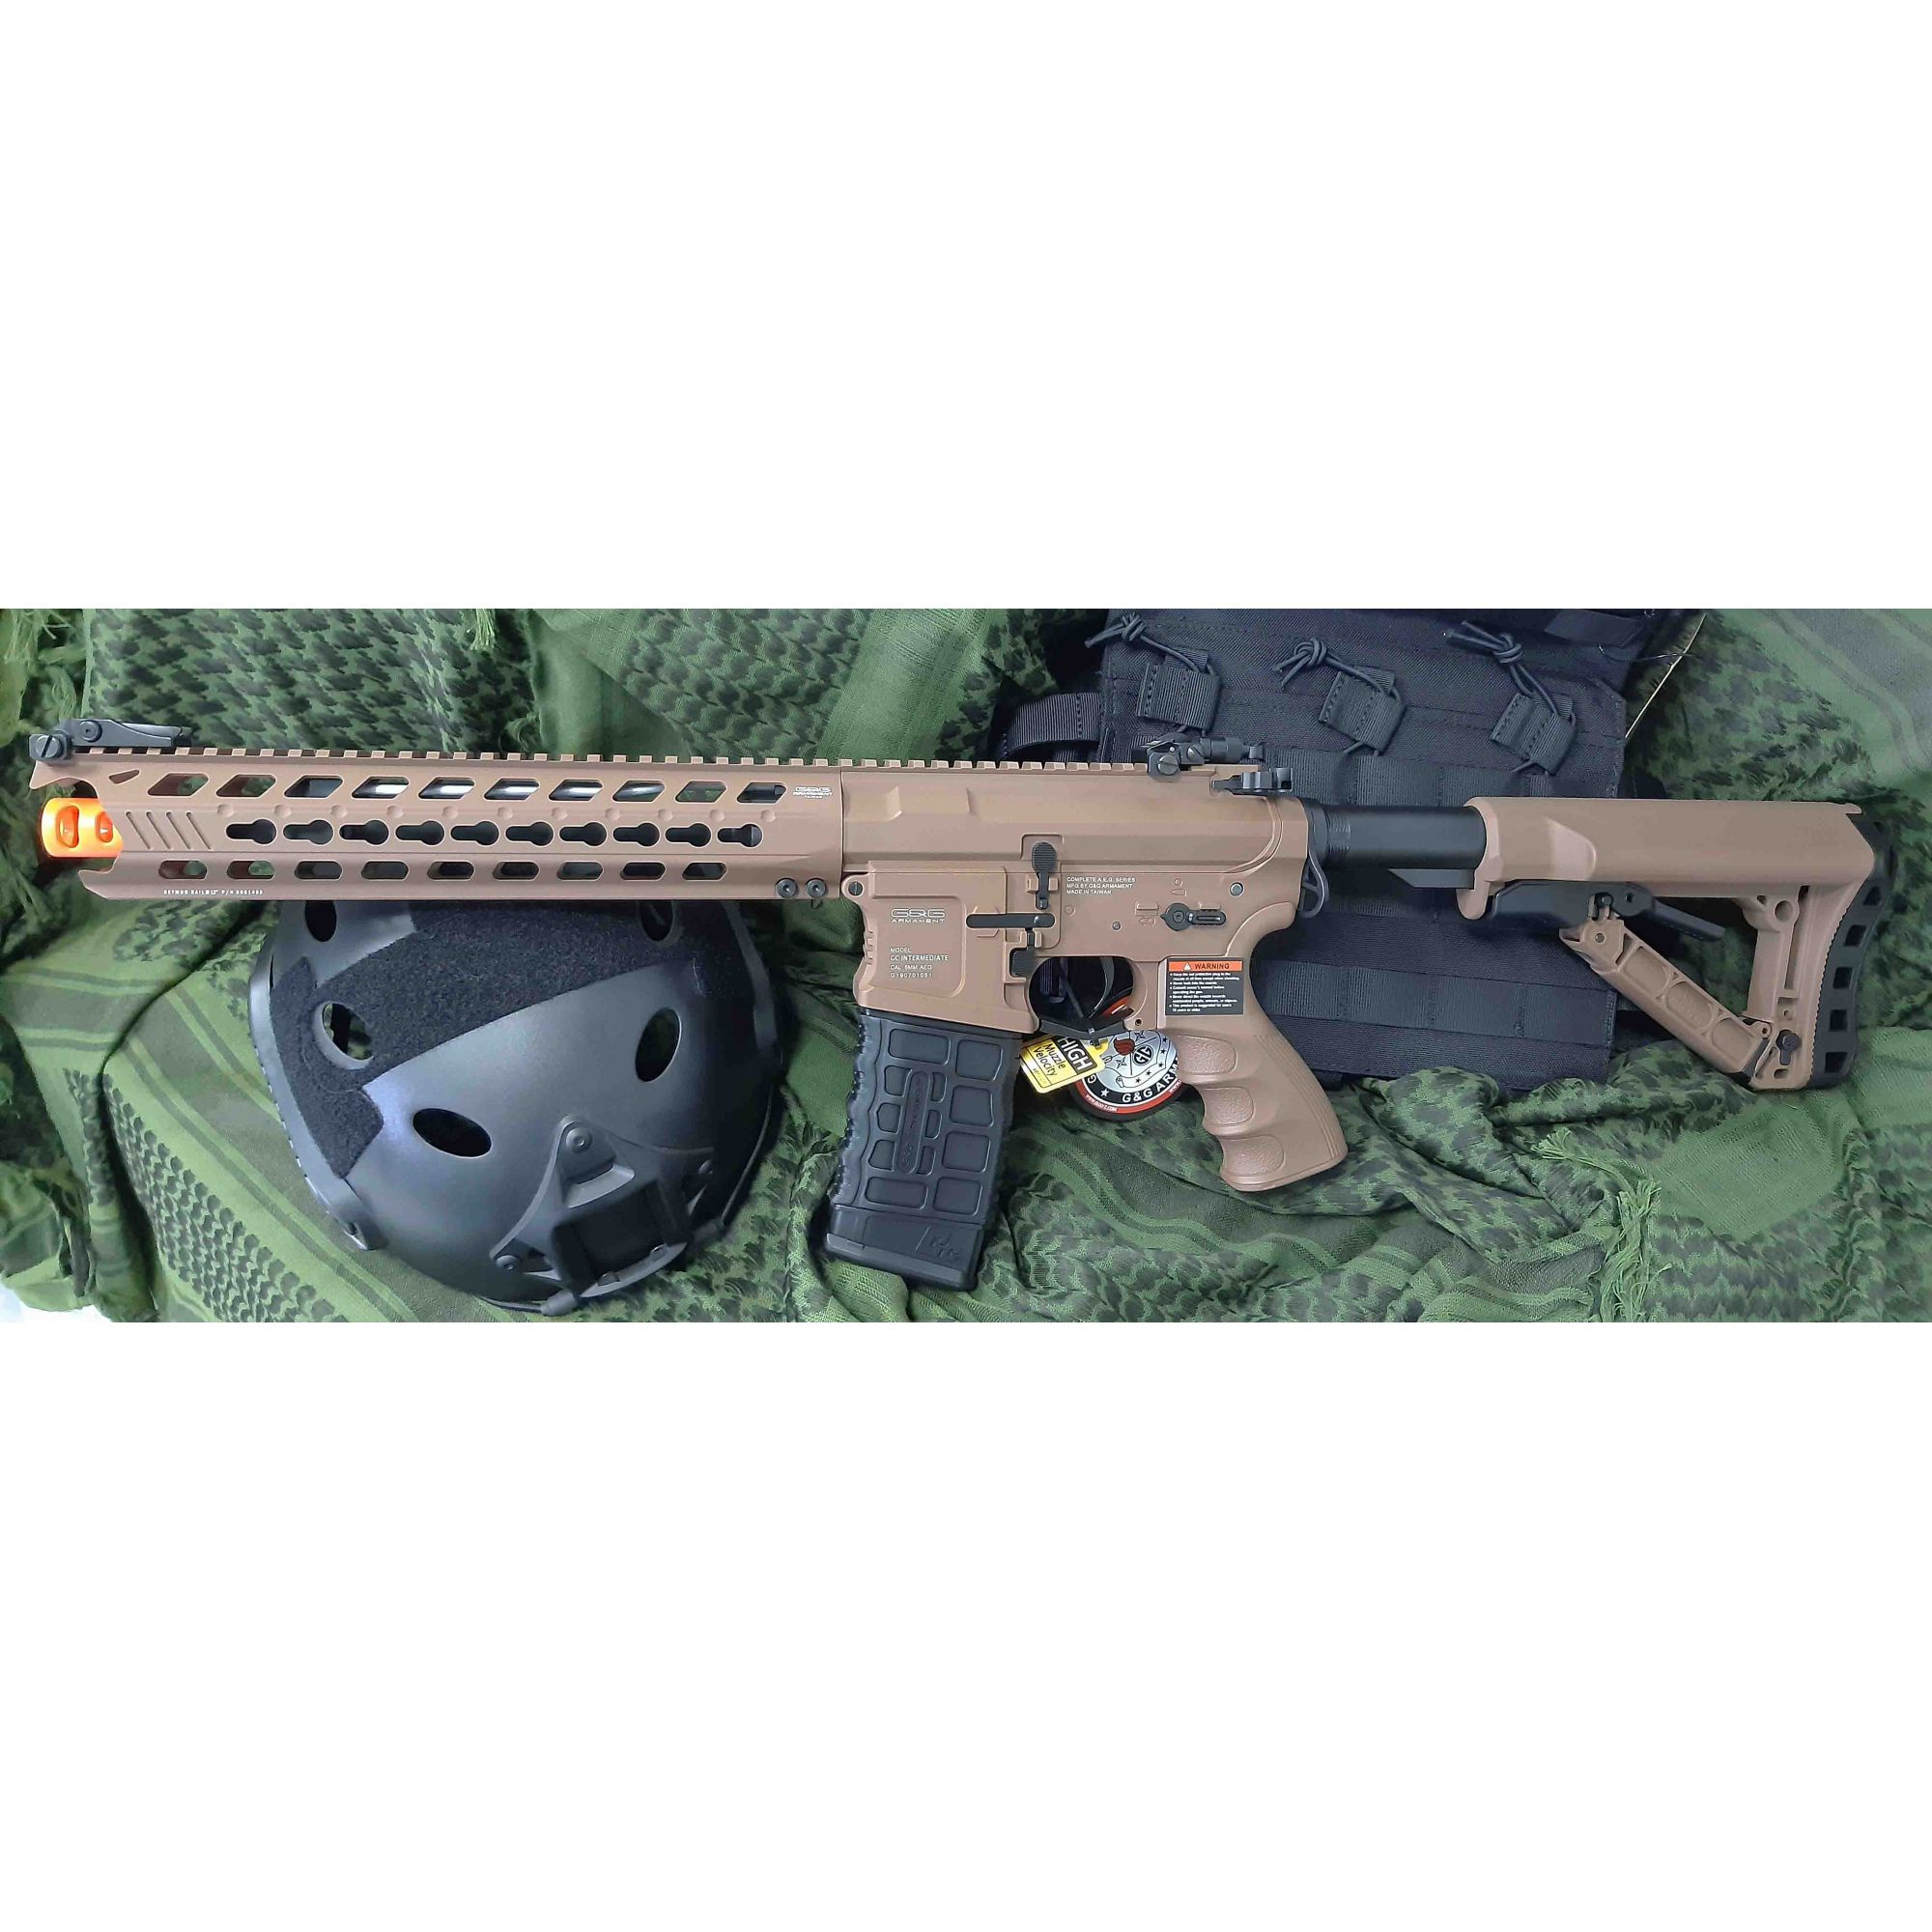 Rifle Airsoft AEG M4 GC16 Predator Full Metal Coyote Brown  - G&G - Calibre 6 mm